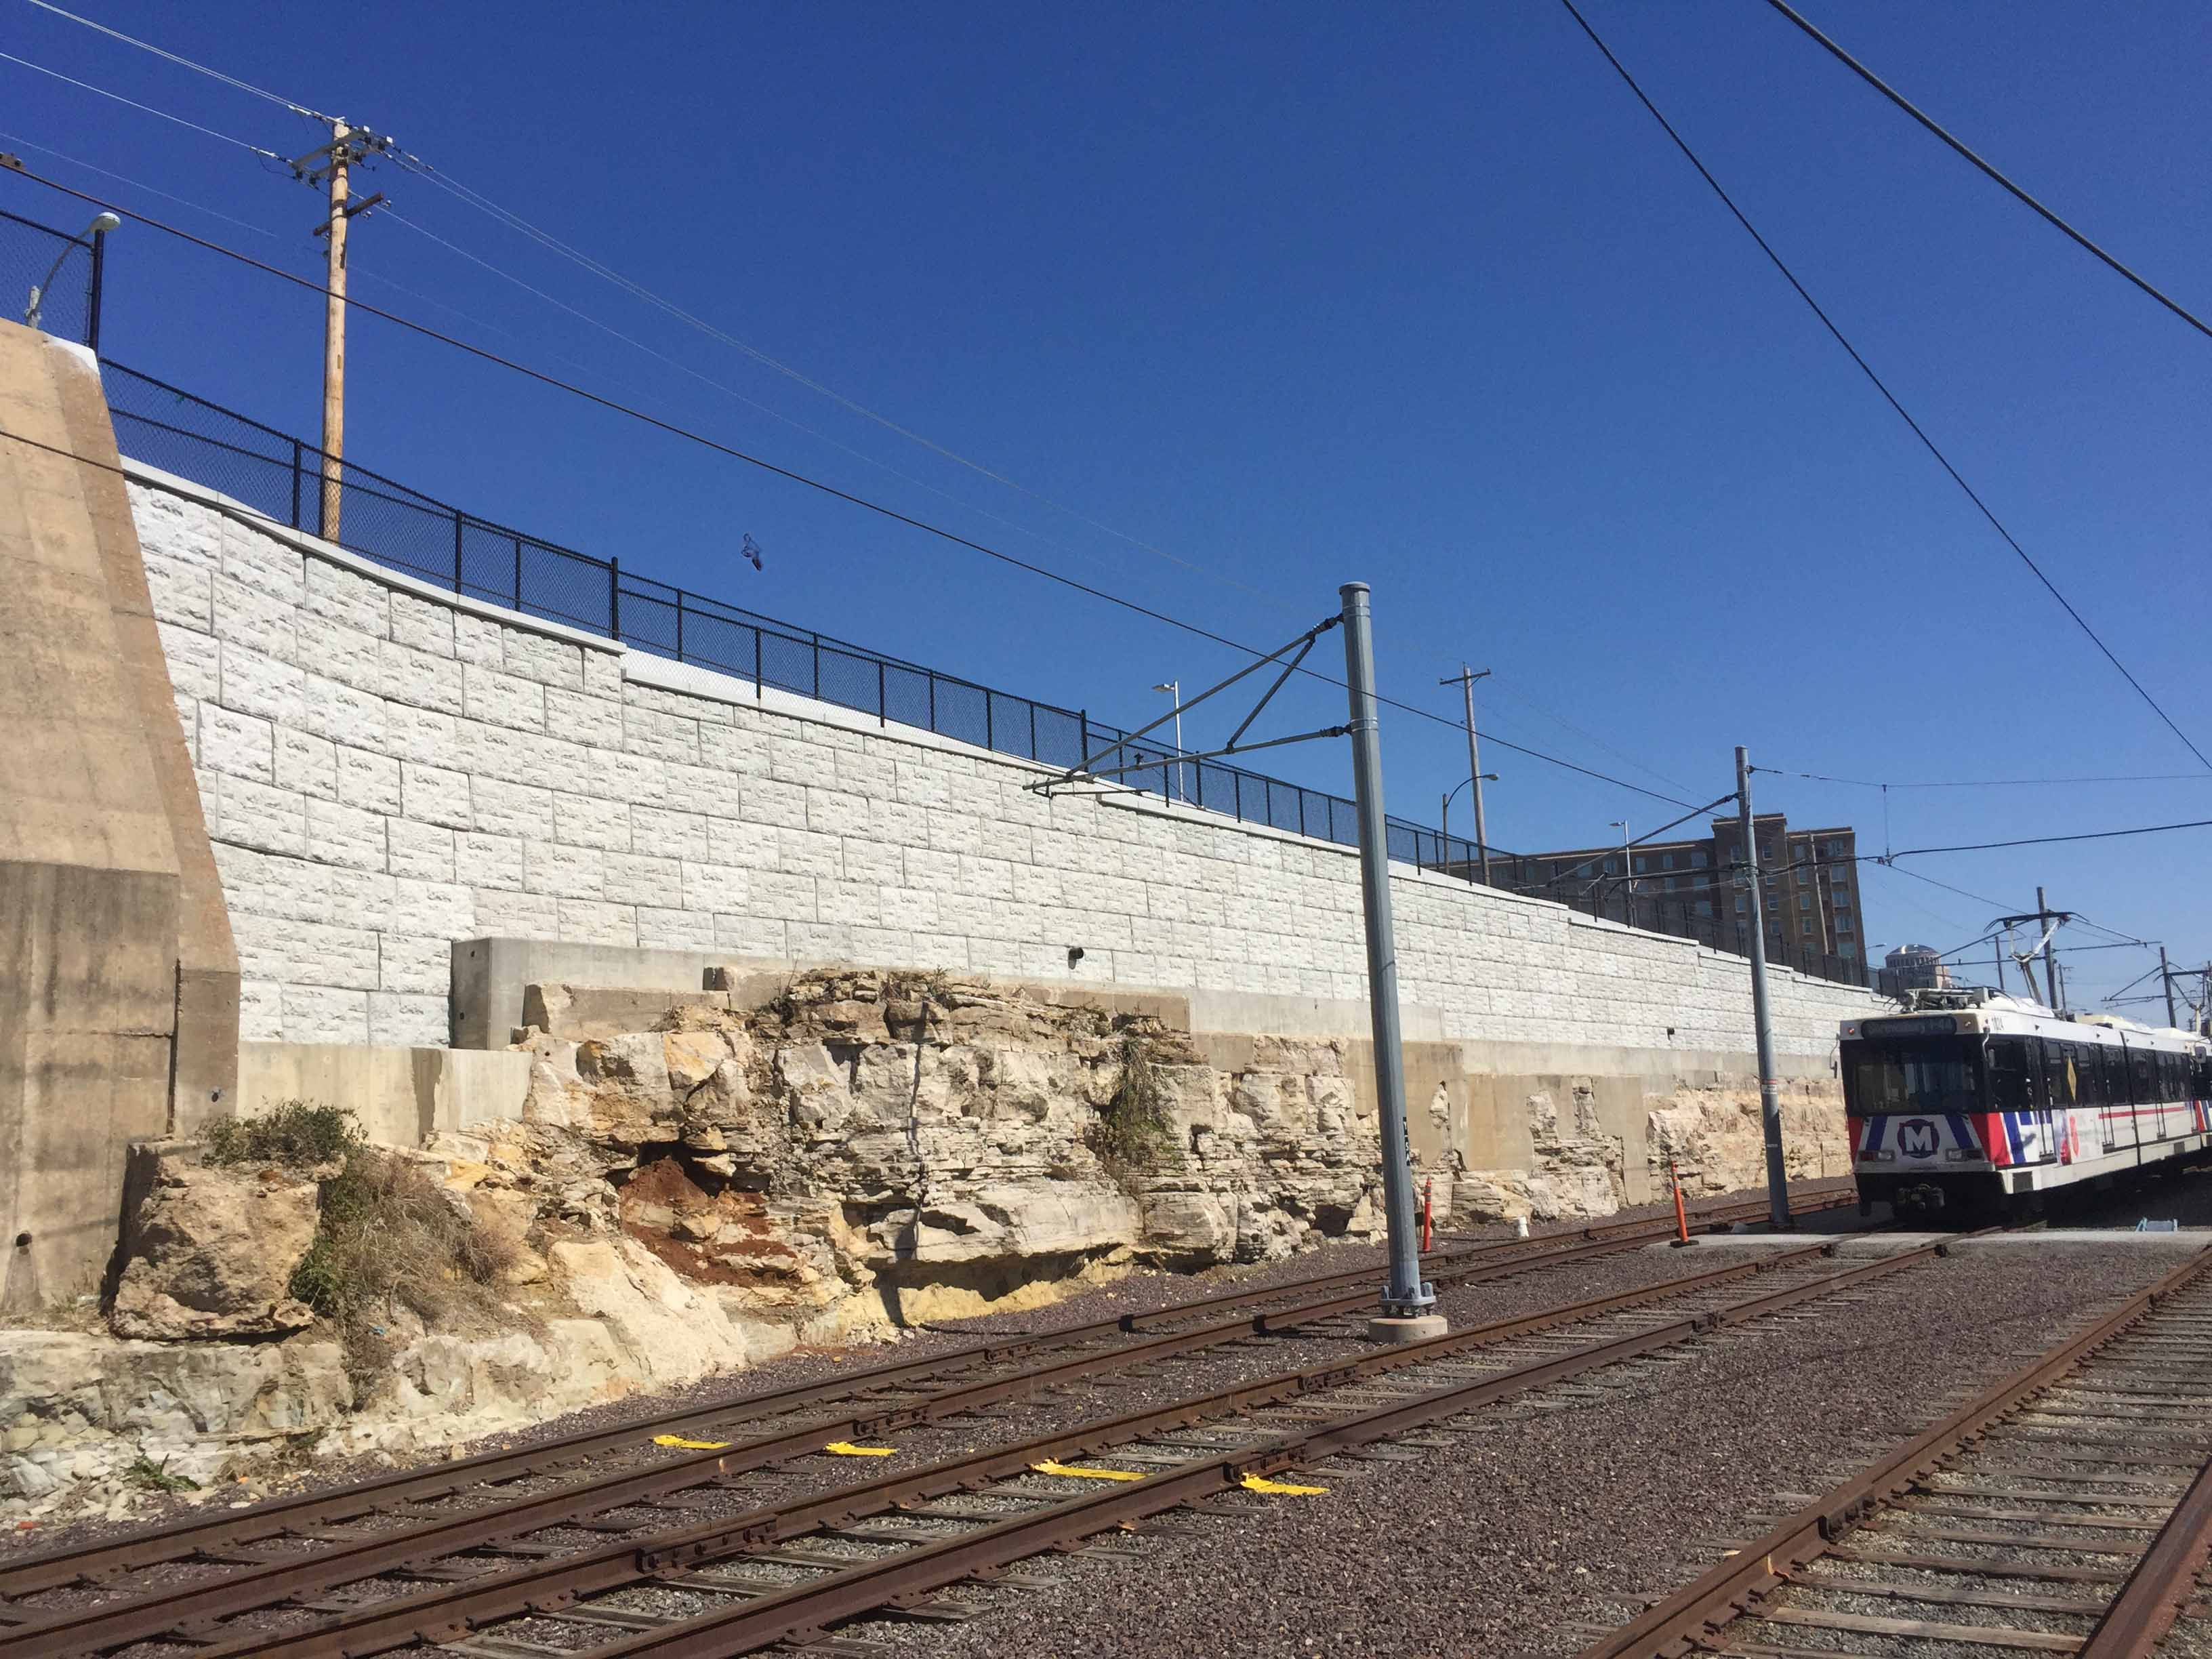 MagnumStone castle face retaining wall in st louis missouri for metro rail